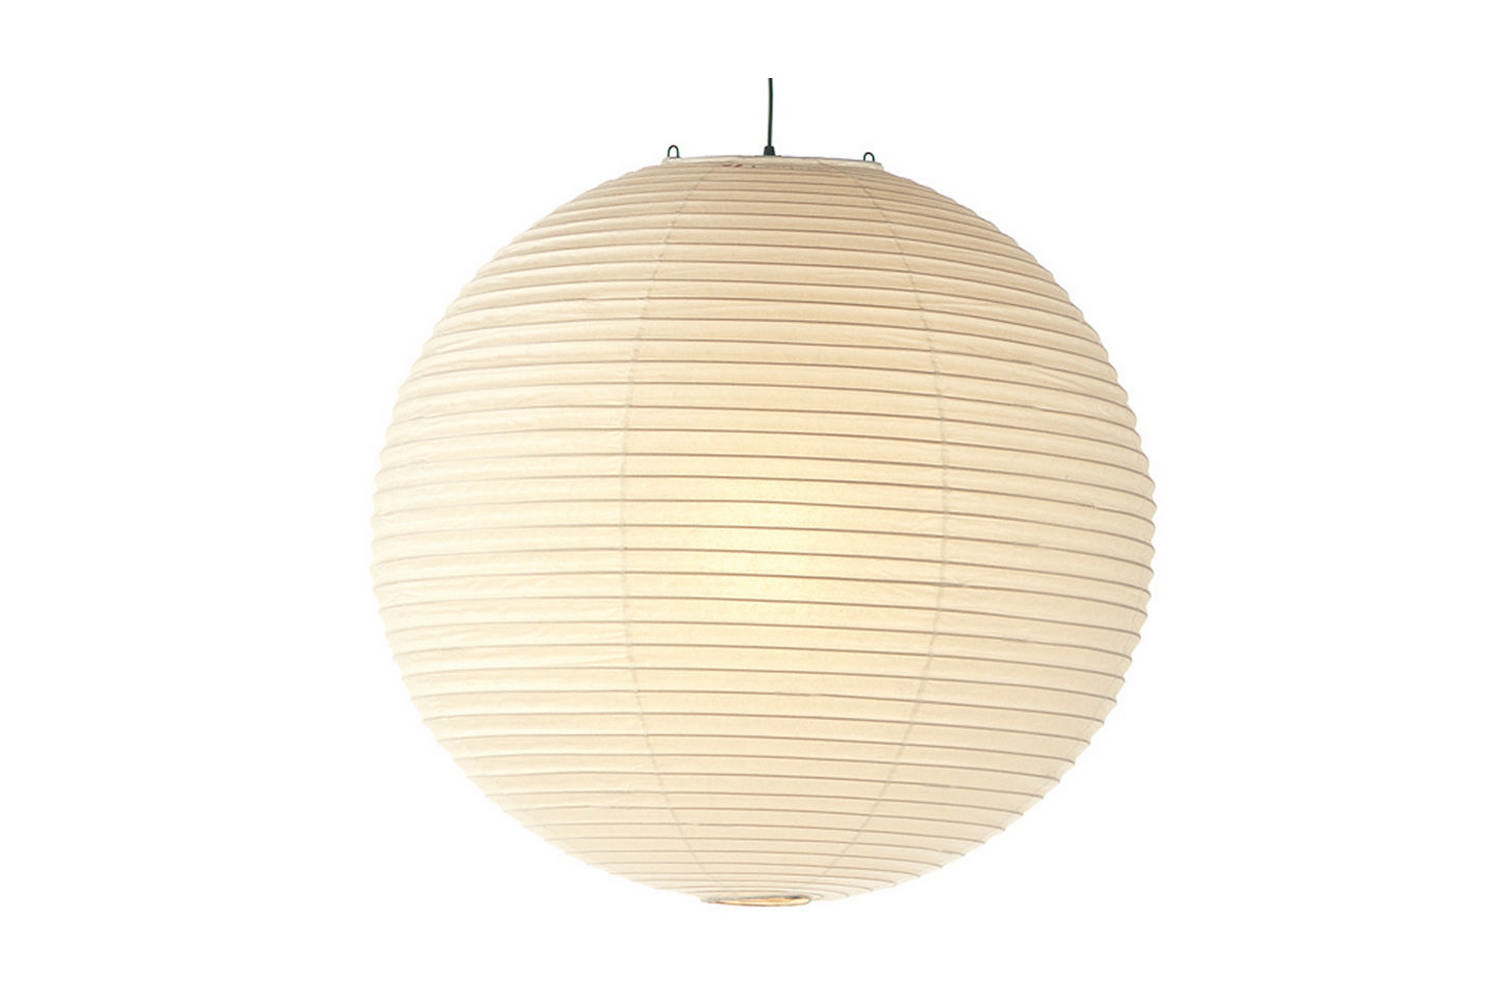 Paper Lanterns Melbourne Akari Light Sculptures Suspension Lamp By Isamu Noguchi For Vitra